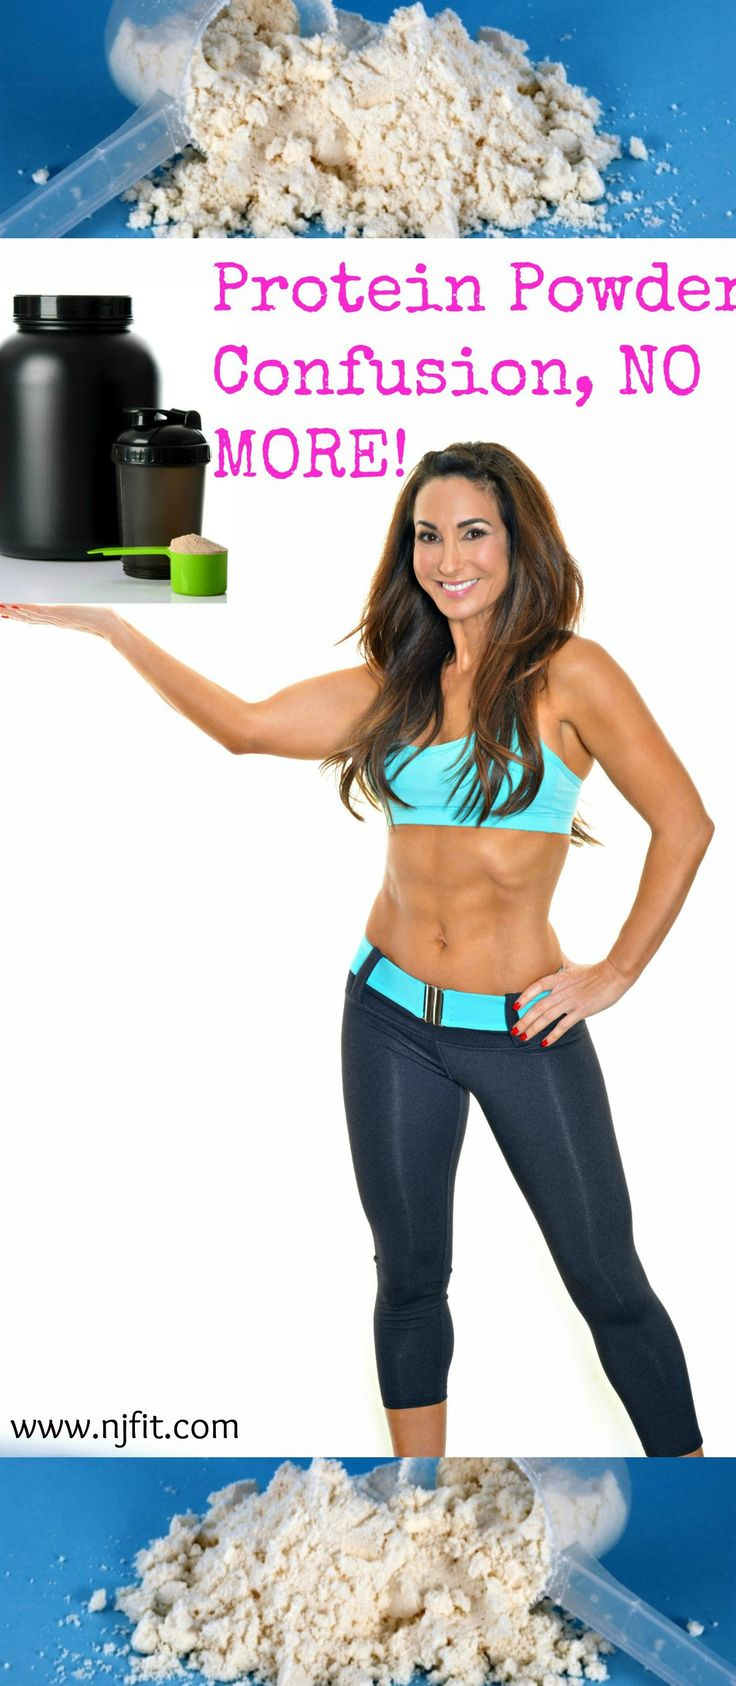 The 25+ best What is whey protein ideas on Pinterest ...